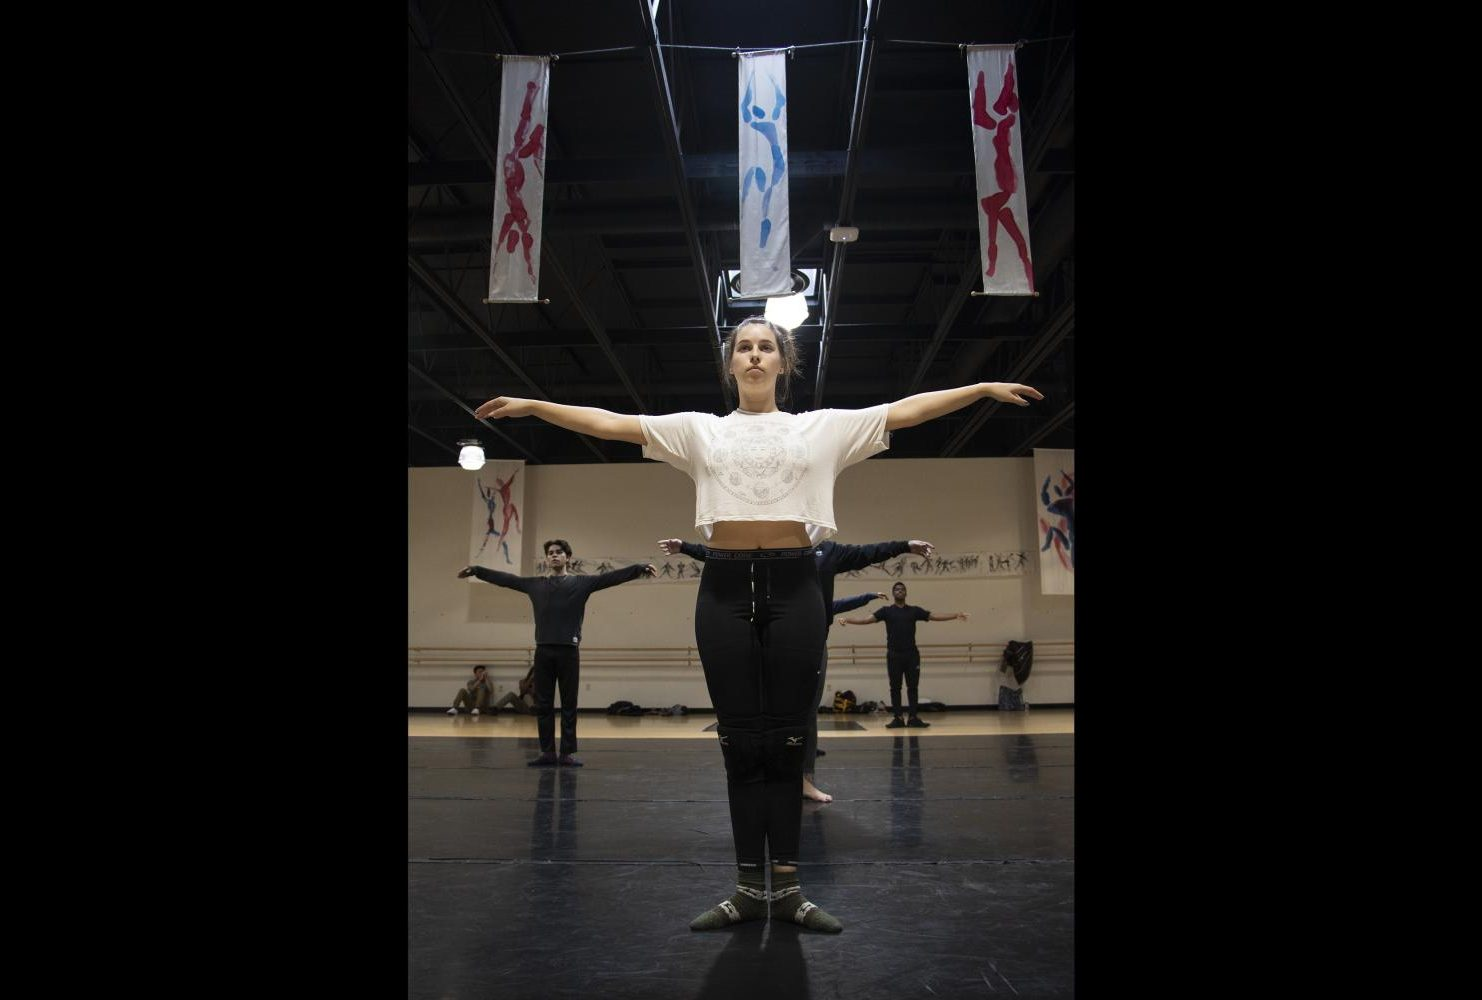 Cat Vandervan, teaching assistant, leads warm ups in the American River College dance studio during Dance Production: Studio & Stage, on Feb. 6, 2019. (Photo by Ashely Hayes-Stone)